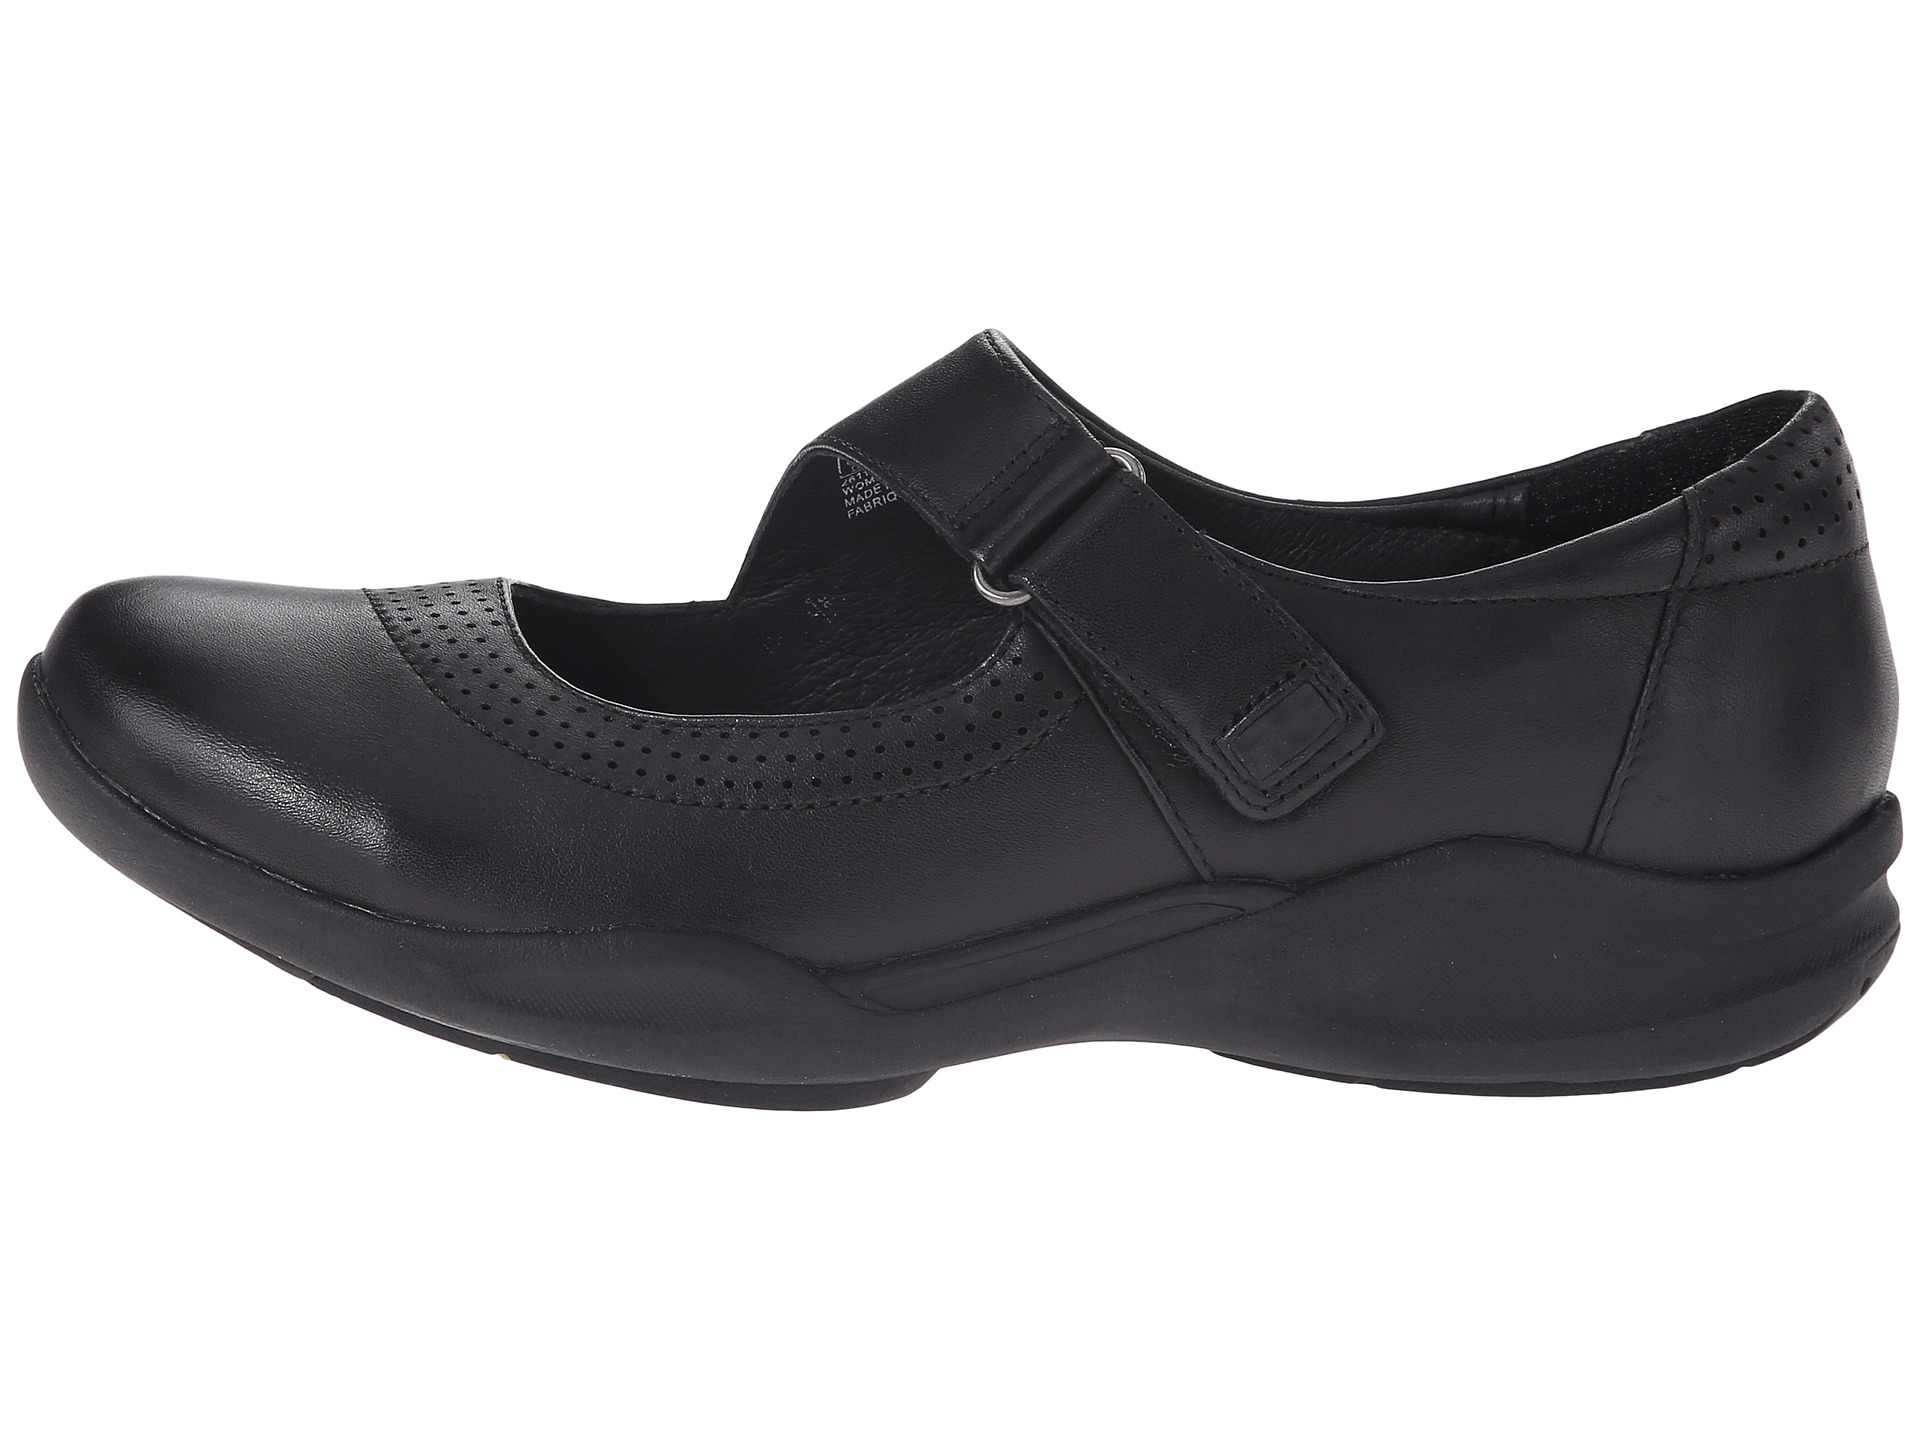 Are K Shoes Part Of Clarks